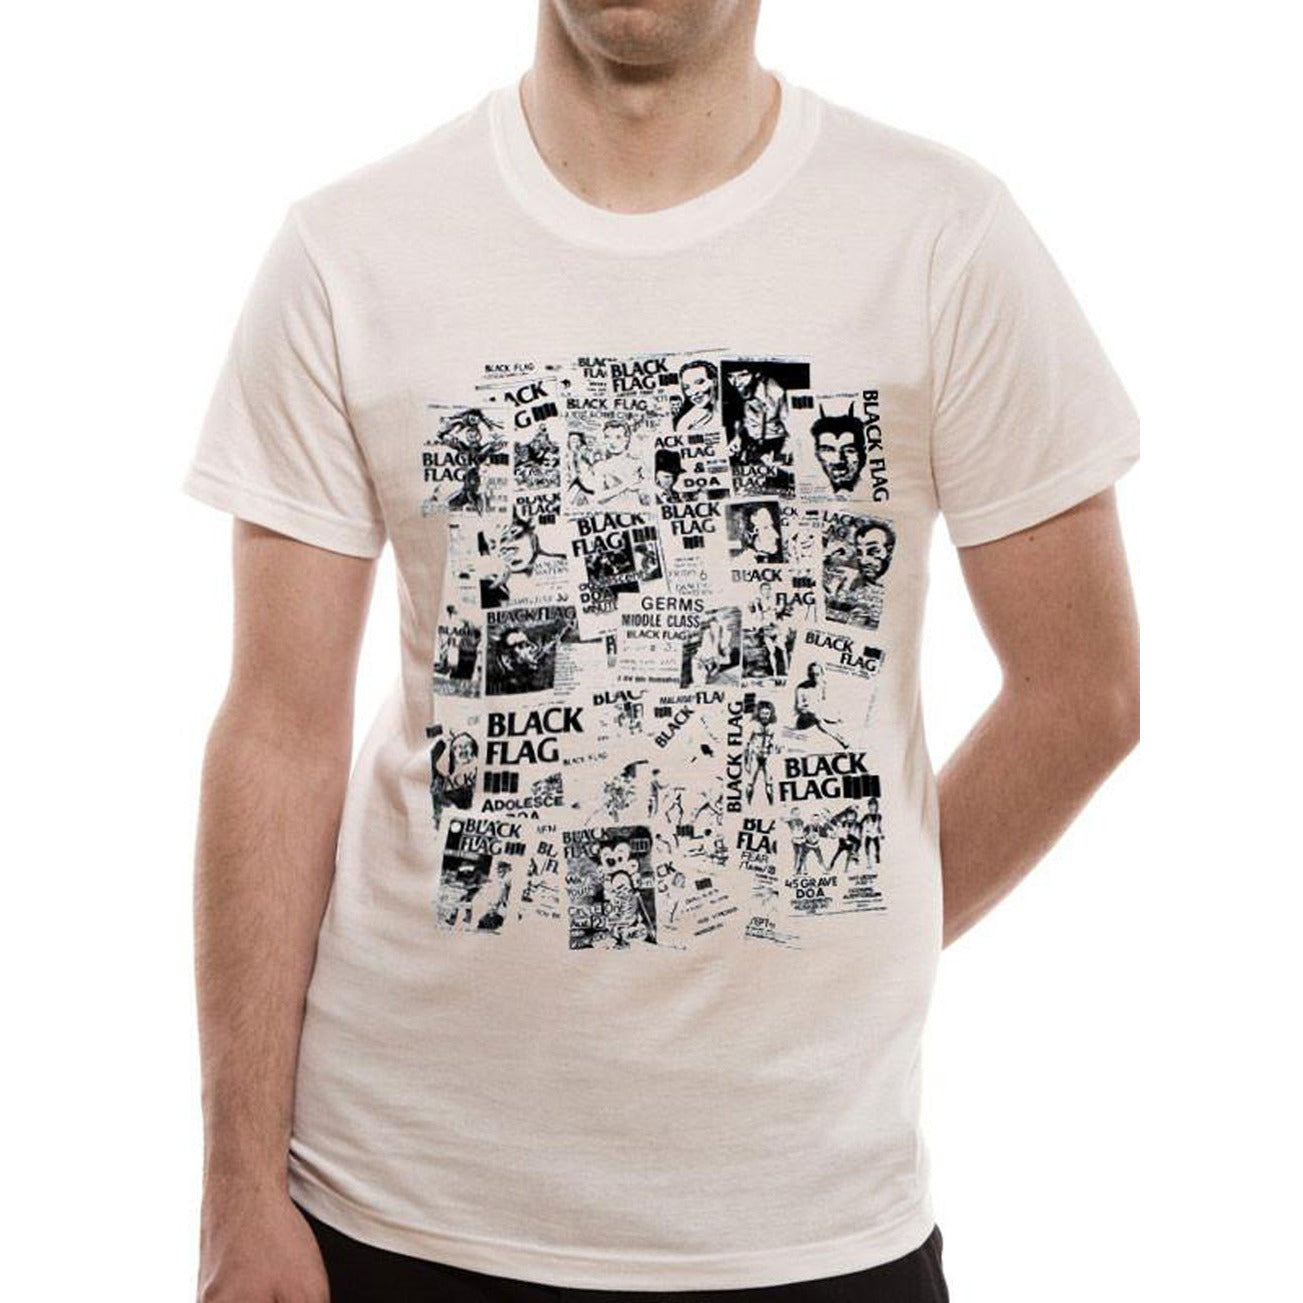 e560c64e0 Buy Black Flag - Flyers T-shirt at Loudshop.com for only £7.00